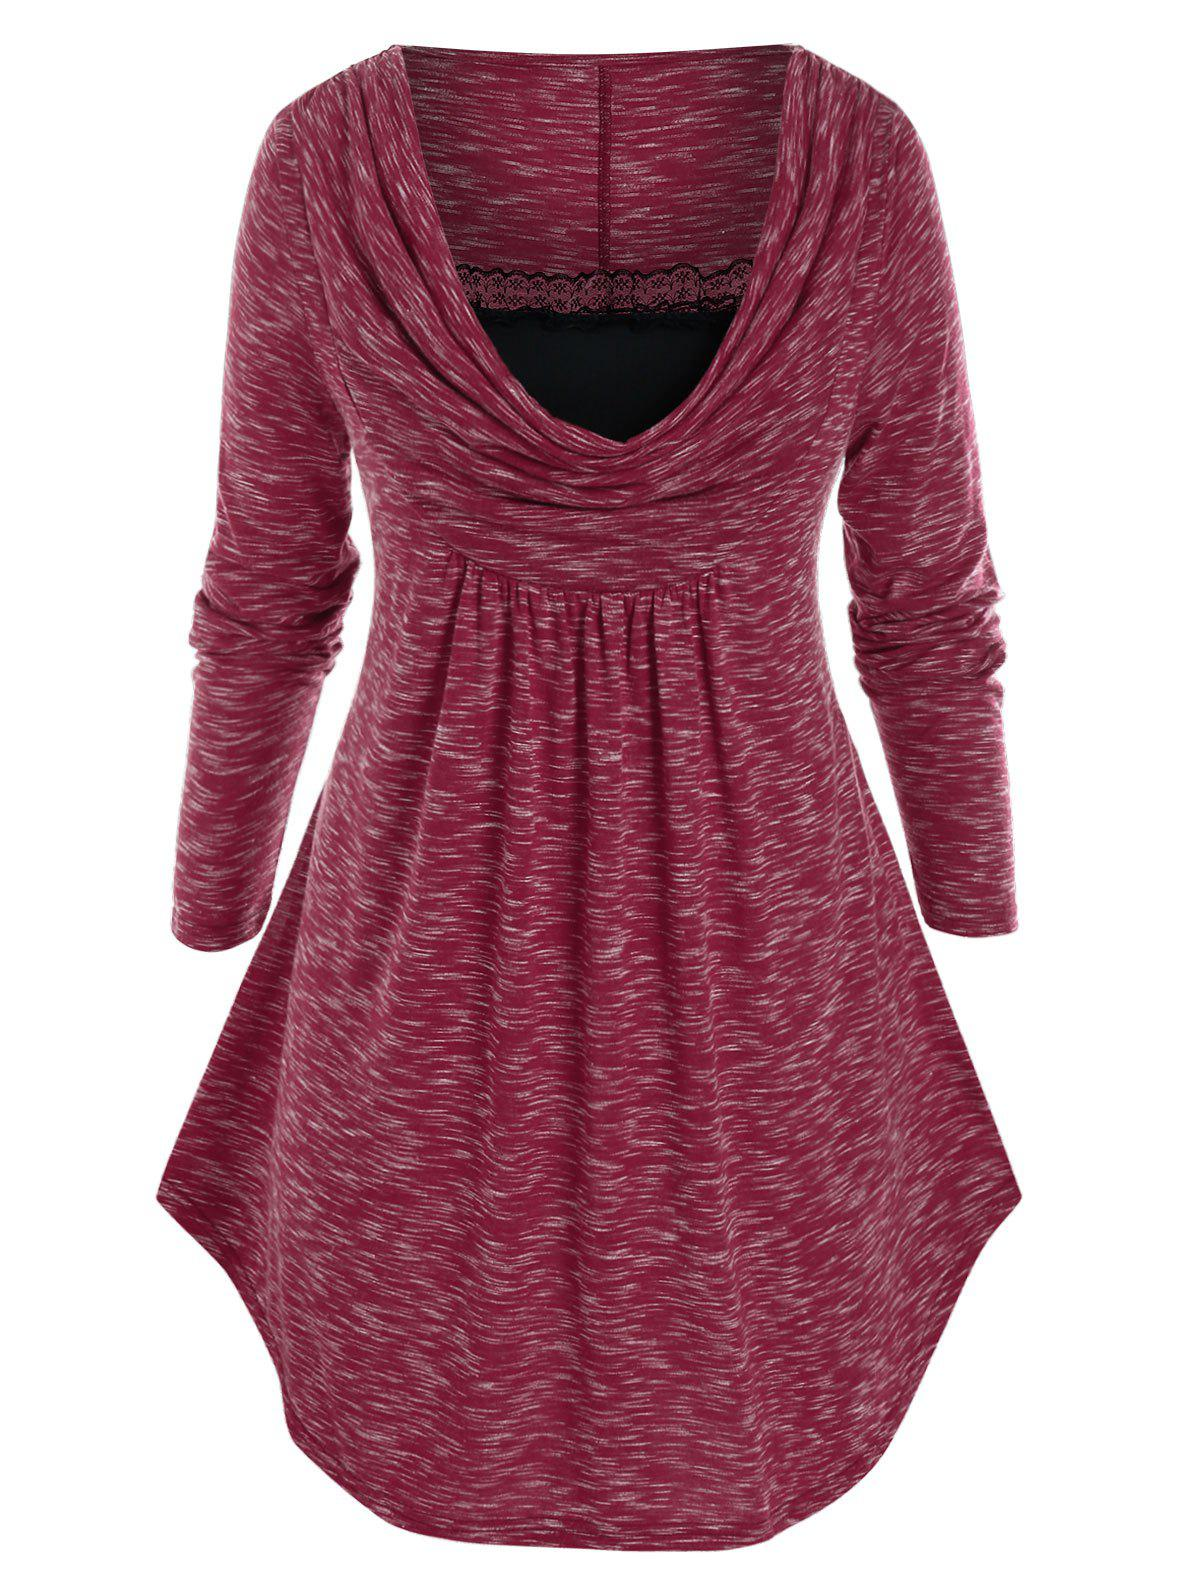 Plus Size Space Dye Lace Insert Cowl Front Long Sleeve Tee - RED WINE L